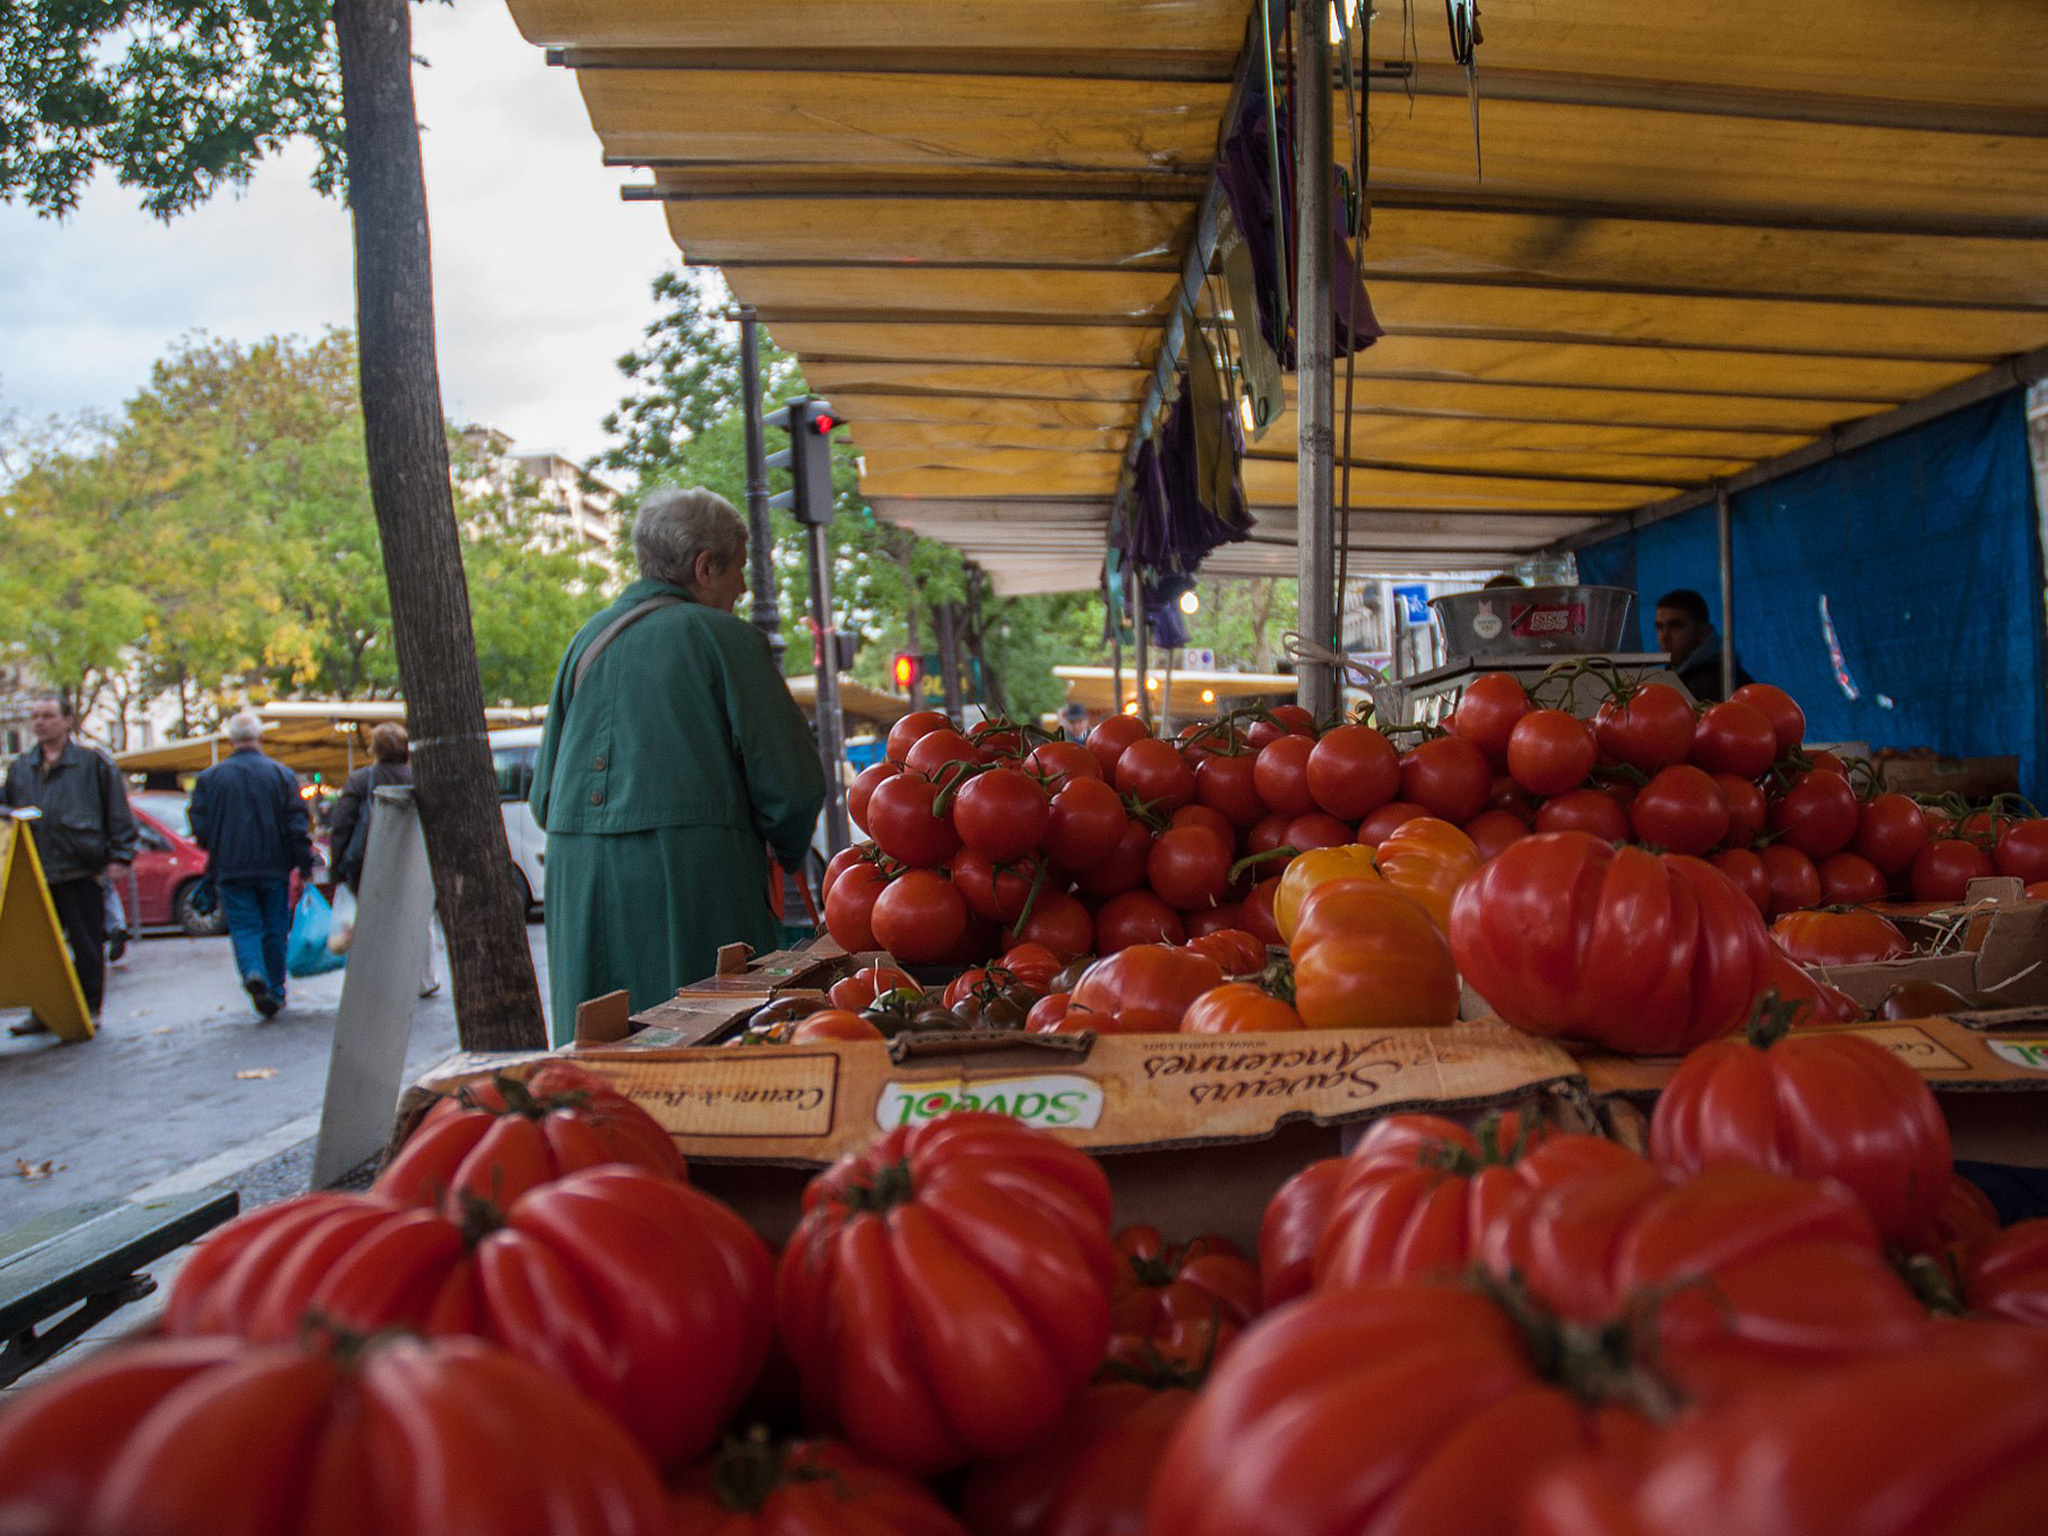 An elderly woman browses a fruit and veg stand at the Marché Bastille